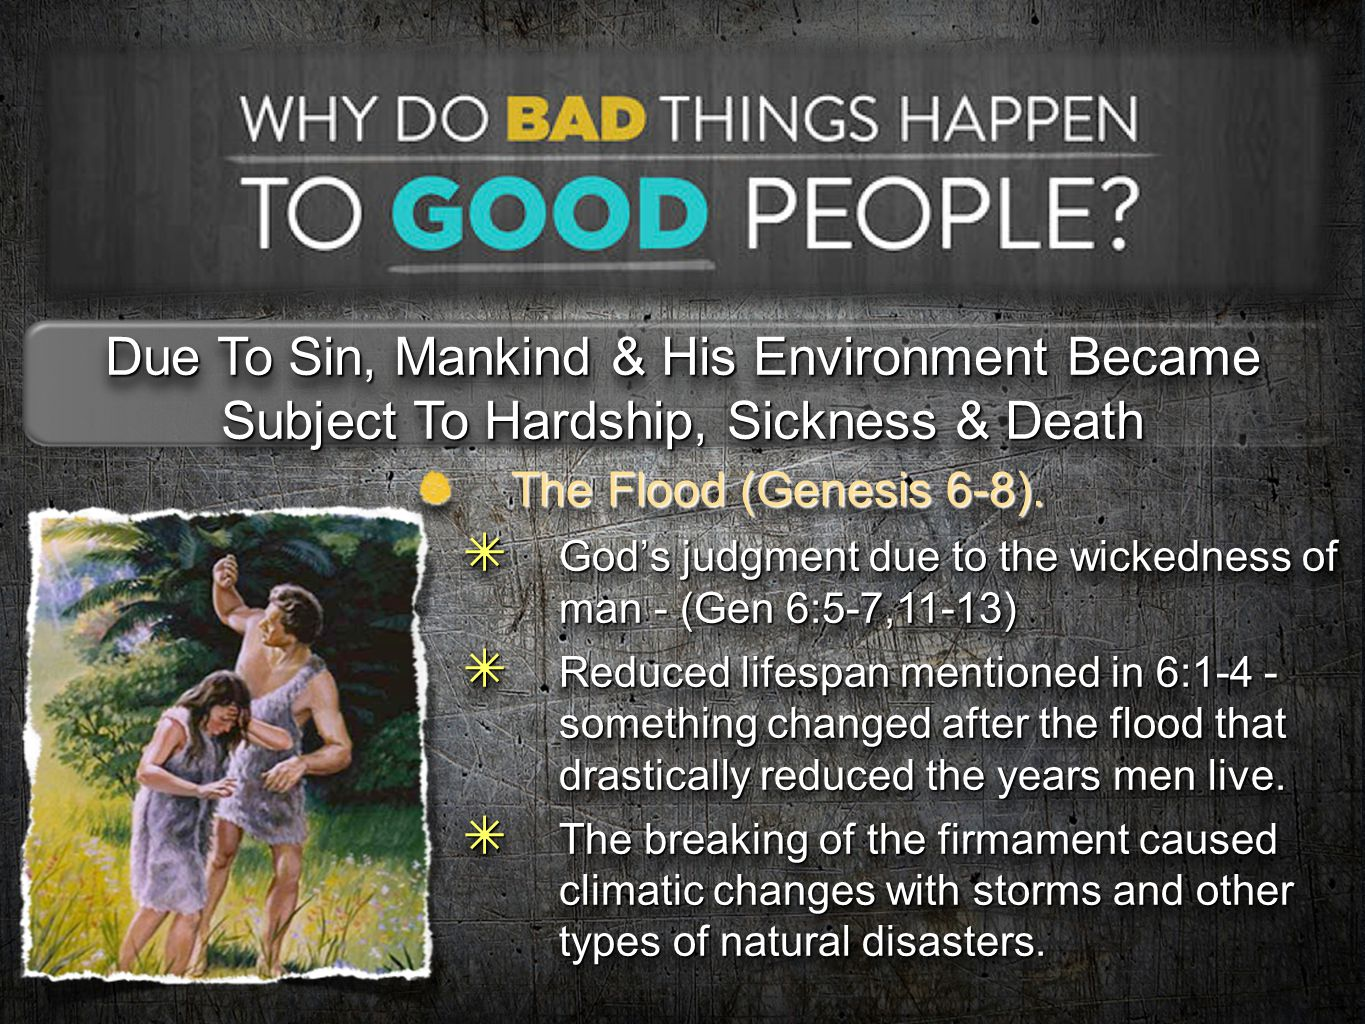 Due To Sin, Mankind & His Environment Became Subject To Hardship, Sickness & Death The Flood (Genesis 6-8). ✴ God's judgment due to the wickedness of